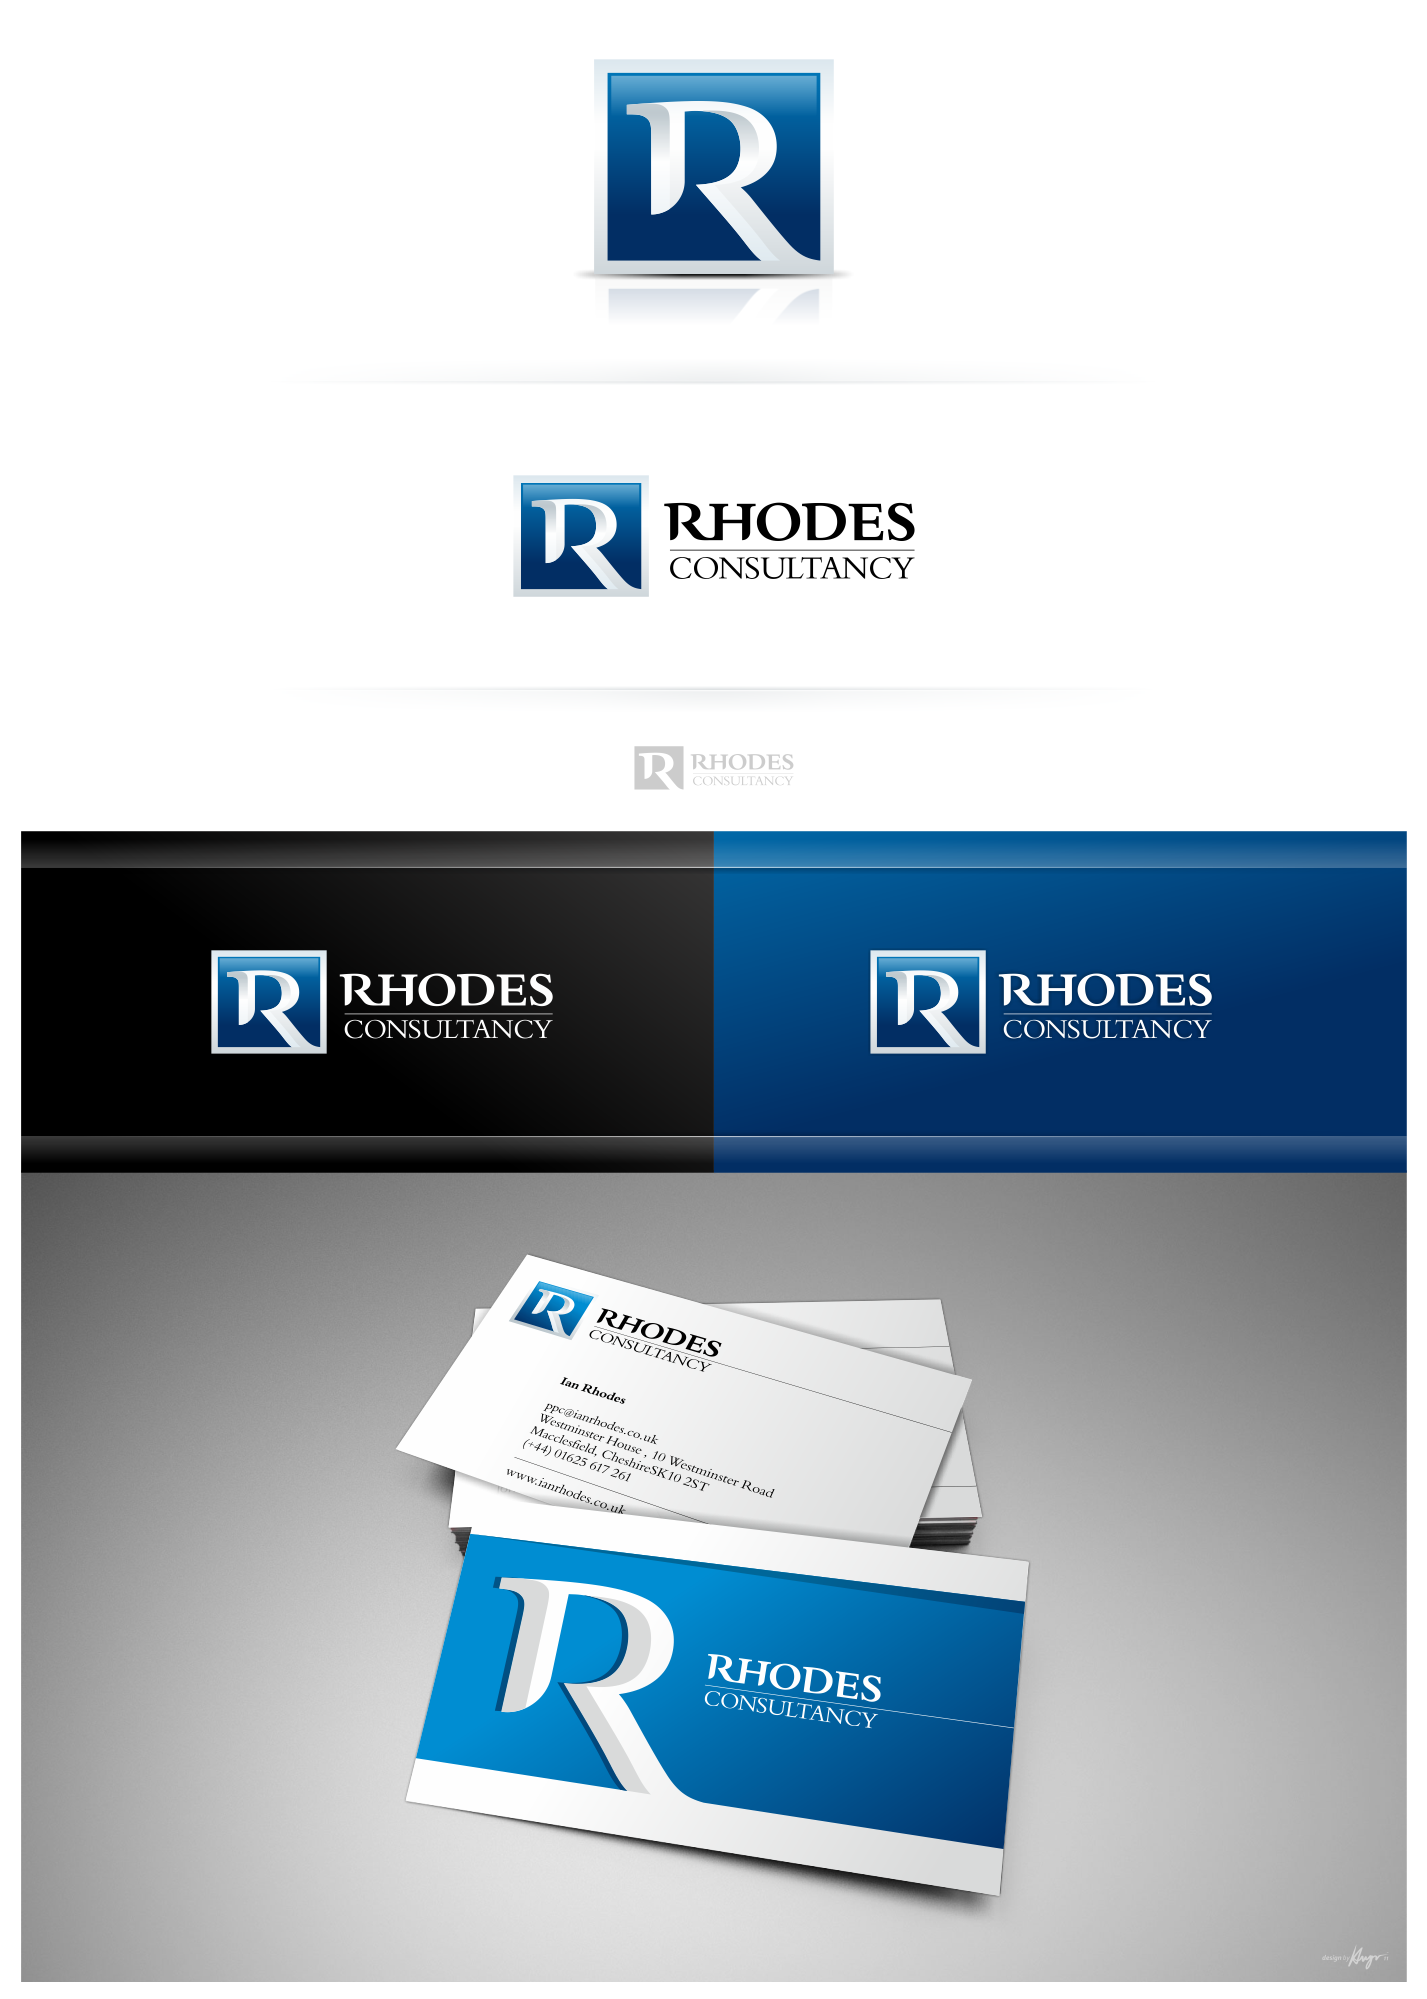 Rhodes Consultancy Limited needs a new logo